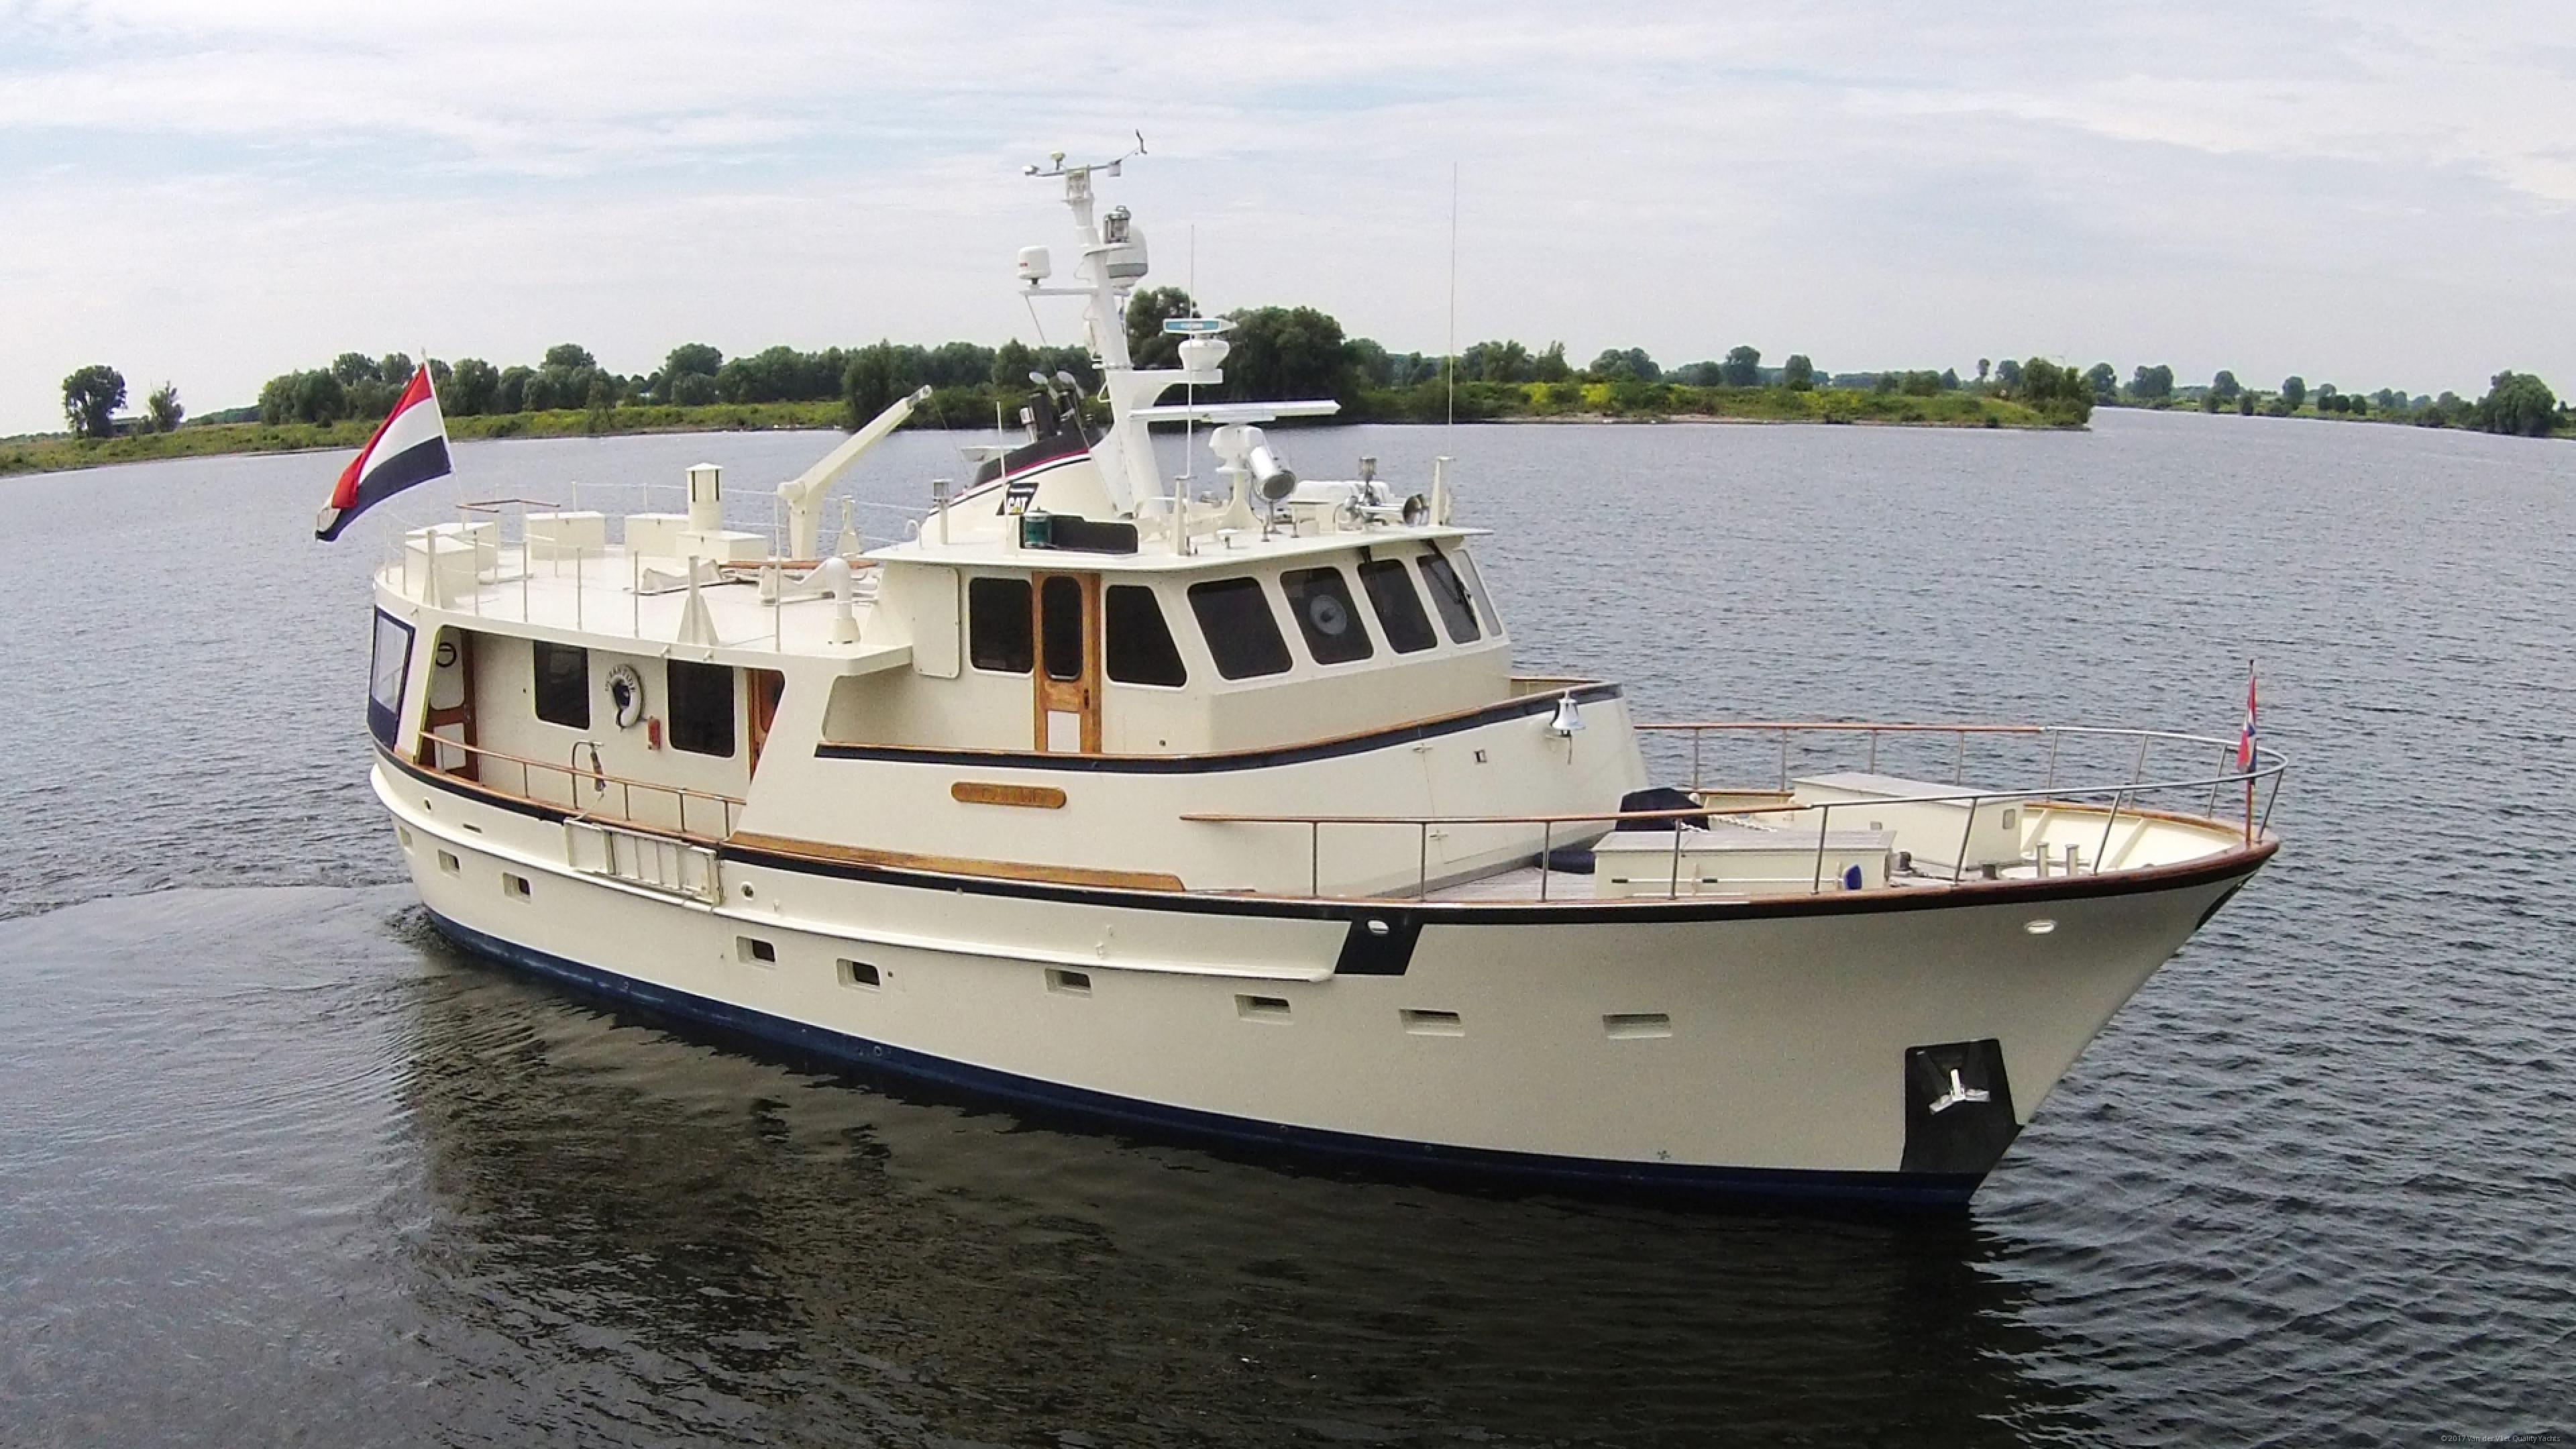 Motor yacht 76 steel trawler van der vliet quality for Used motor yacht for sale